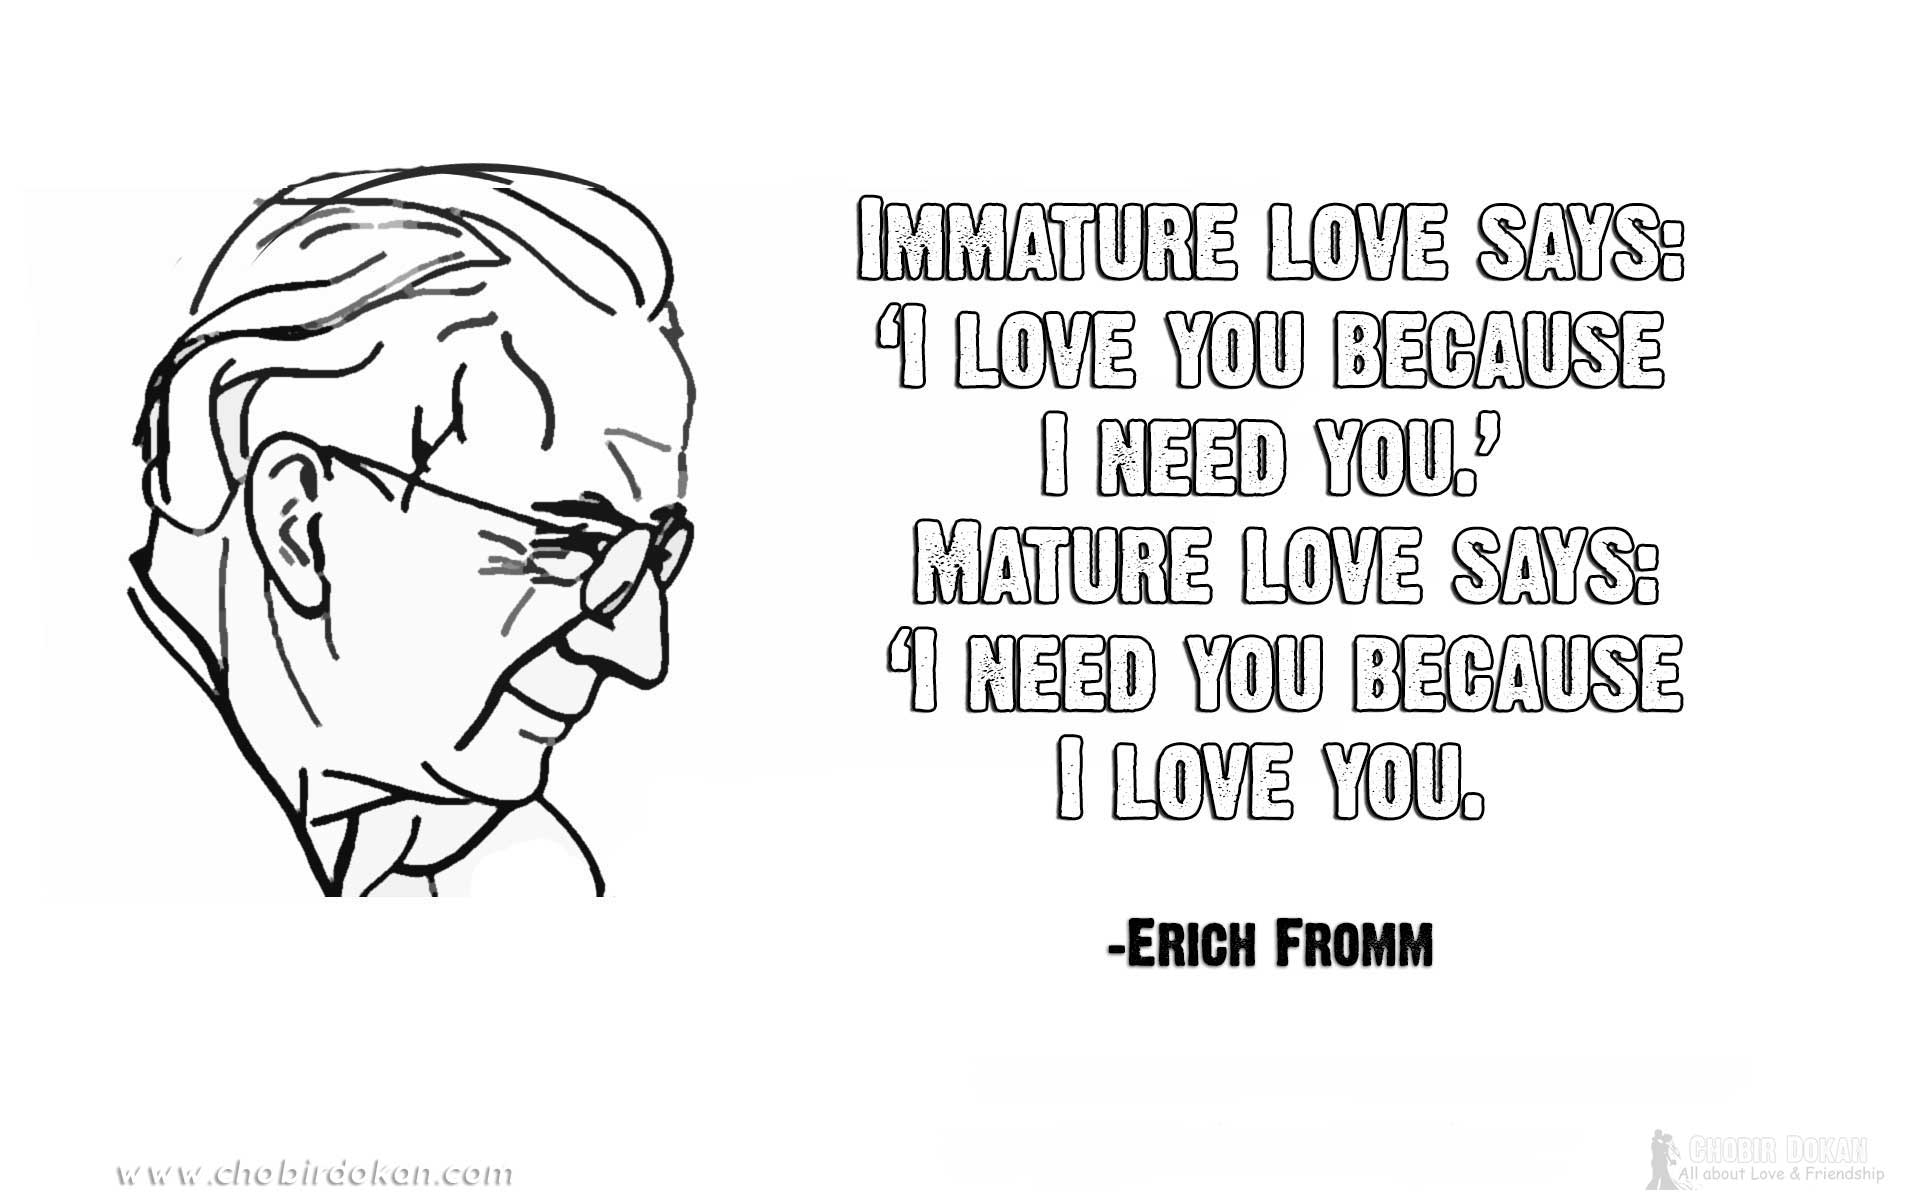 Famous Love Quotes By Famous People -Love Picture Quotes